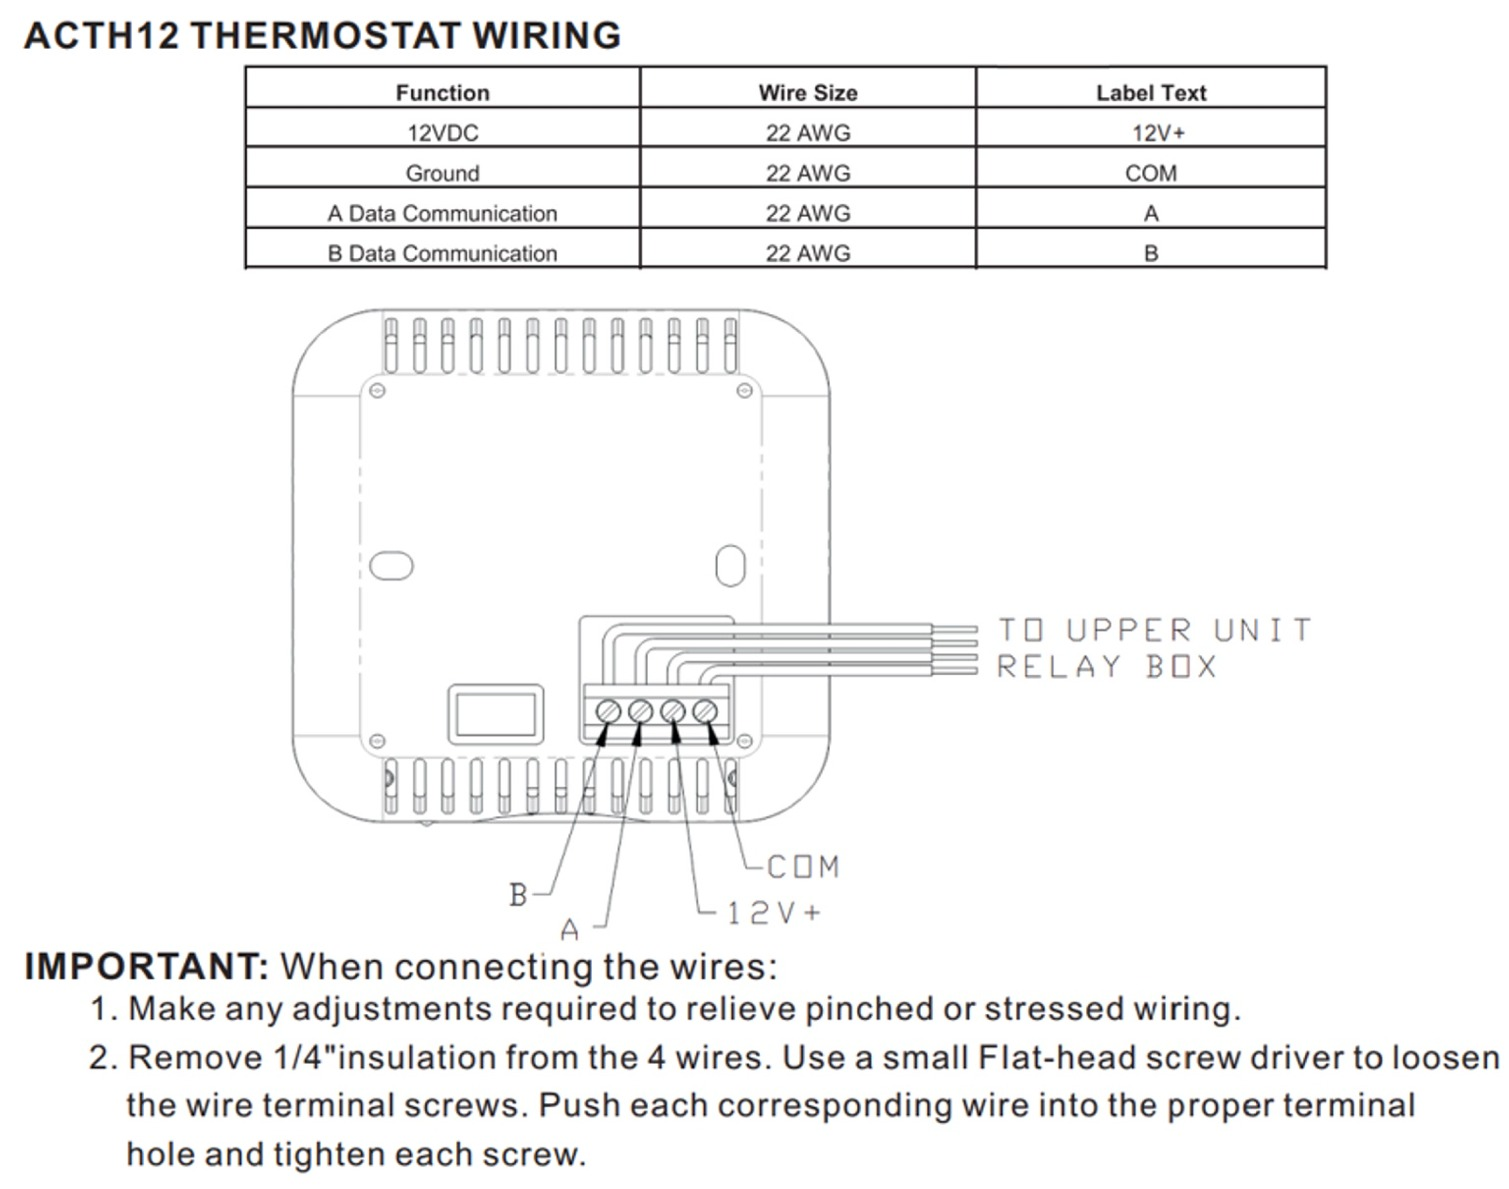 Rv Ac Thermostat Wiring Diagram from data3.answerbase.com